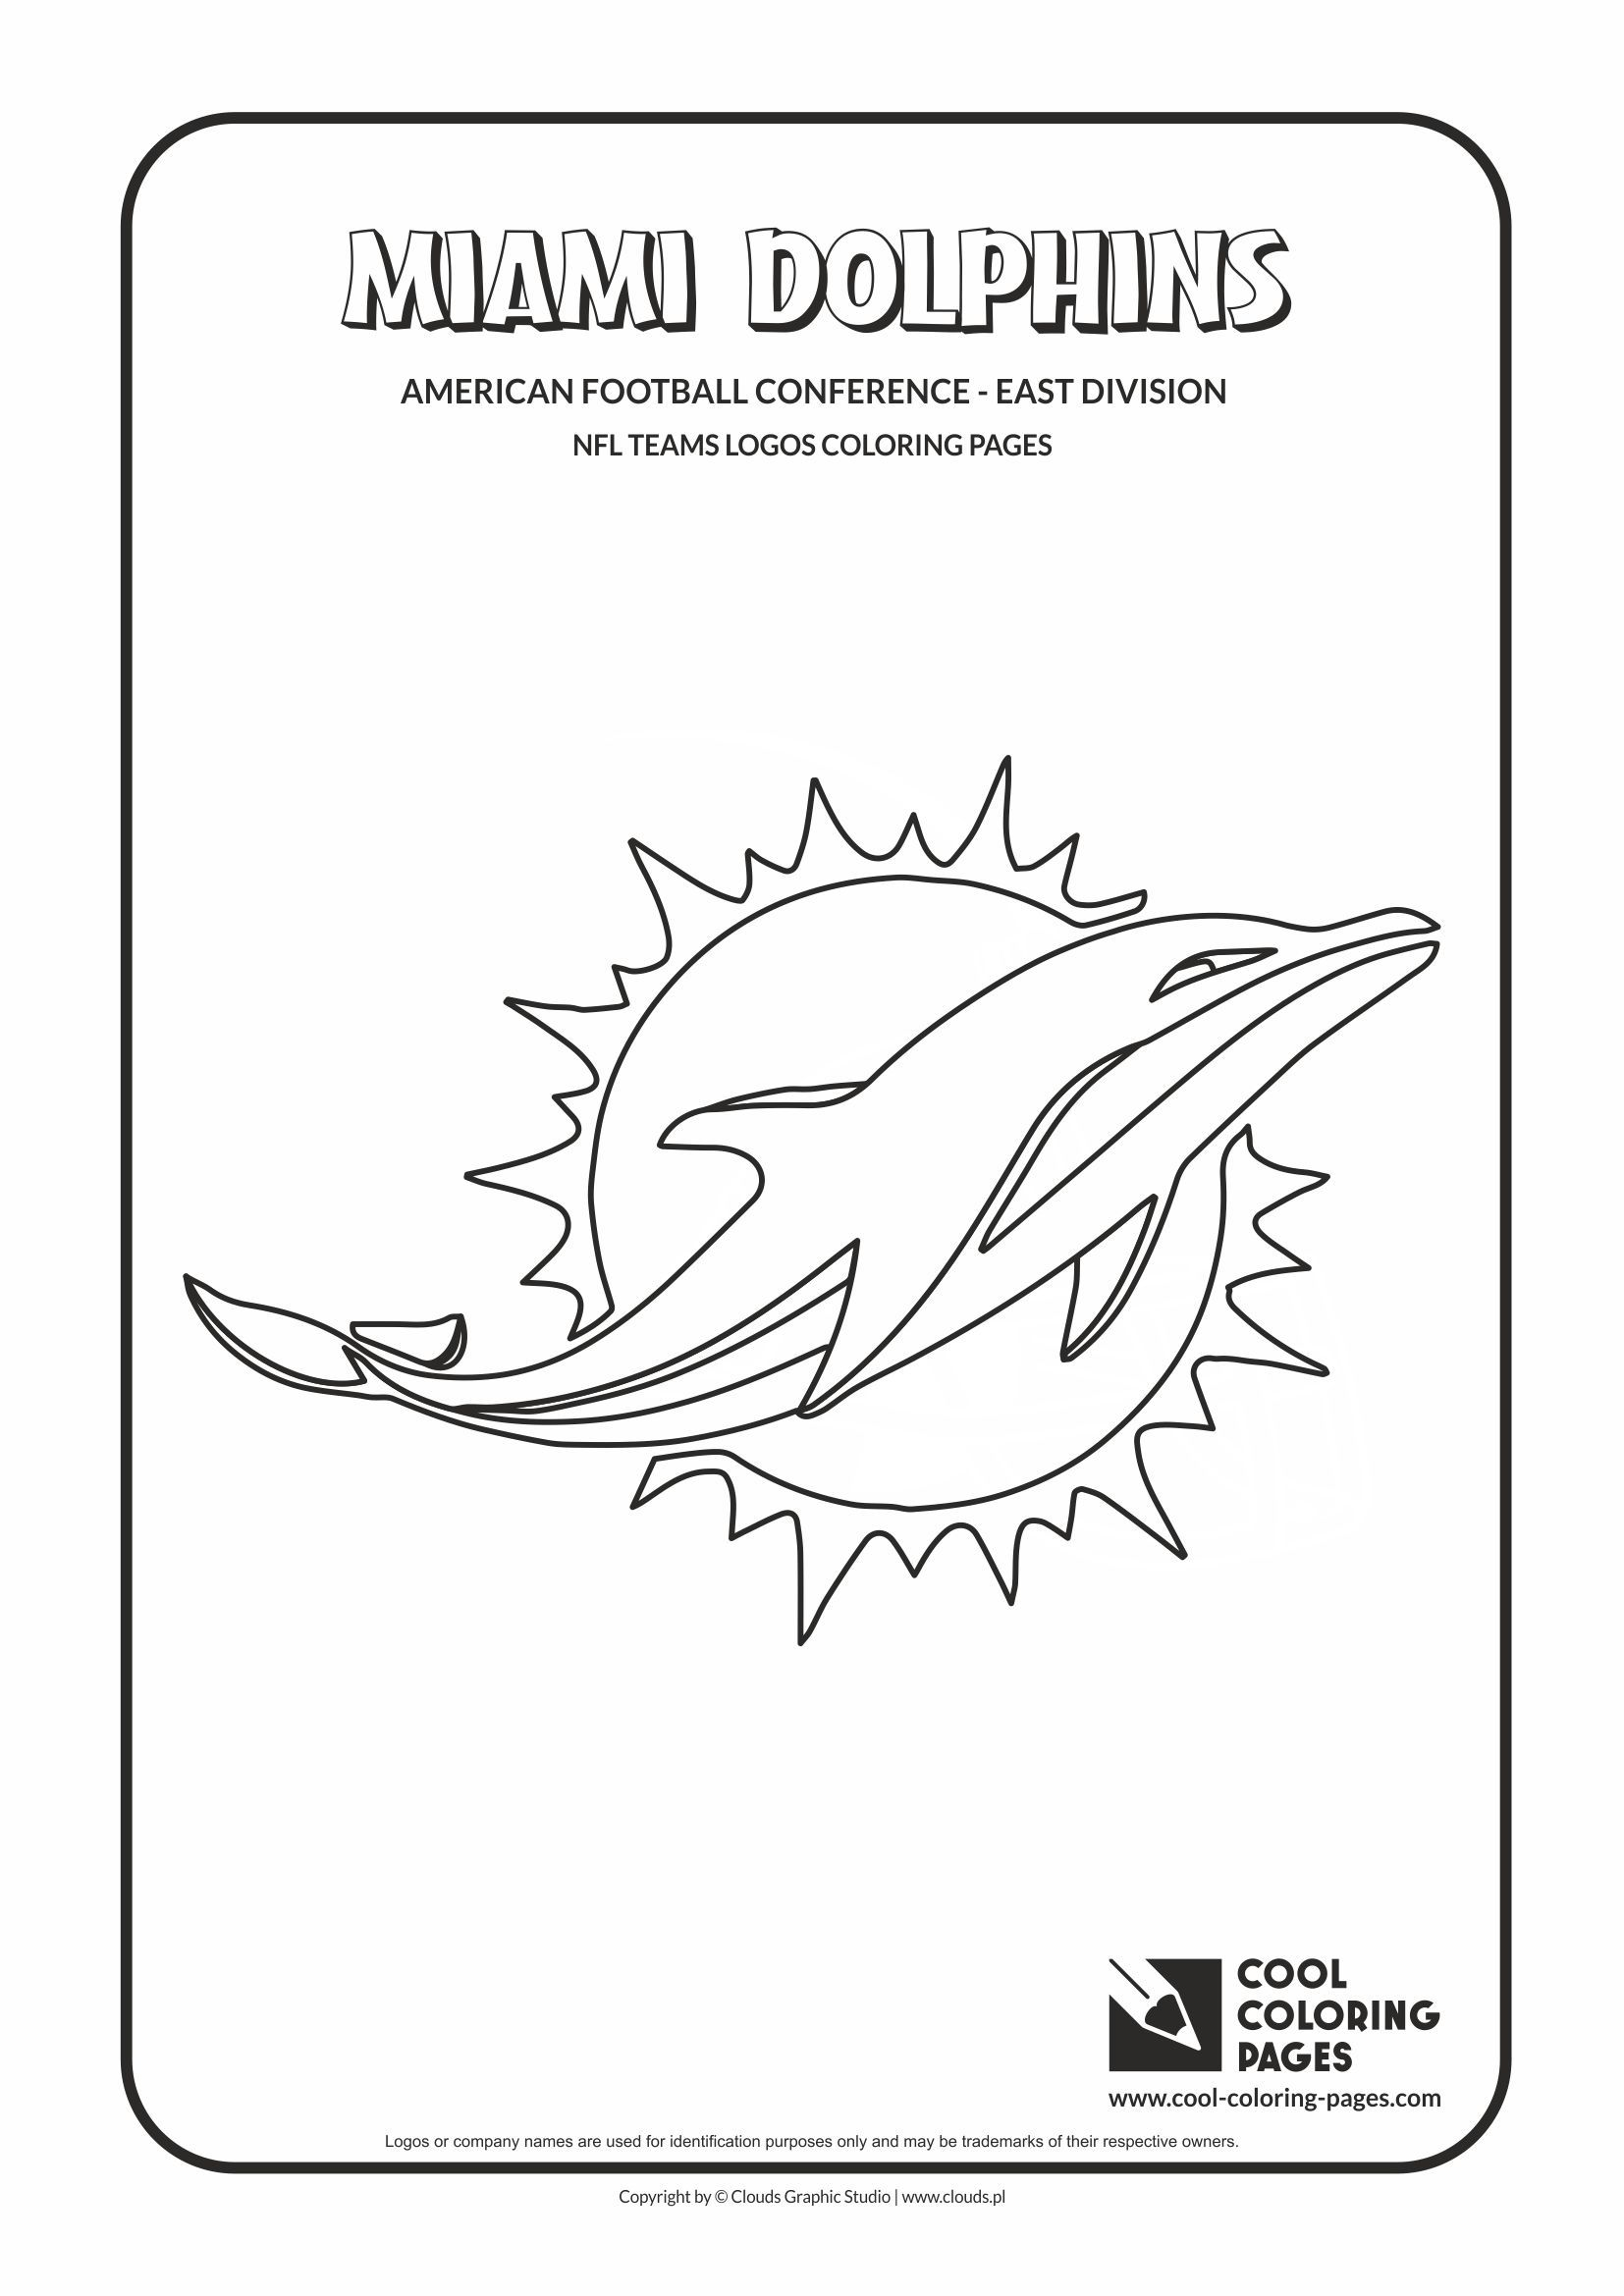 cool coloring pages nfl american football clubs logos american football - Football Coloring Pages Nfl Logos